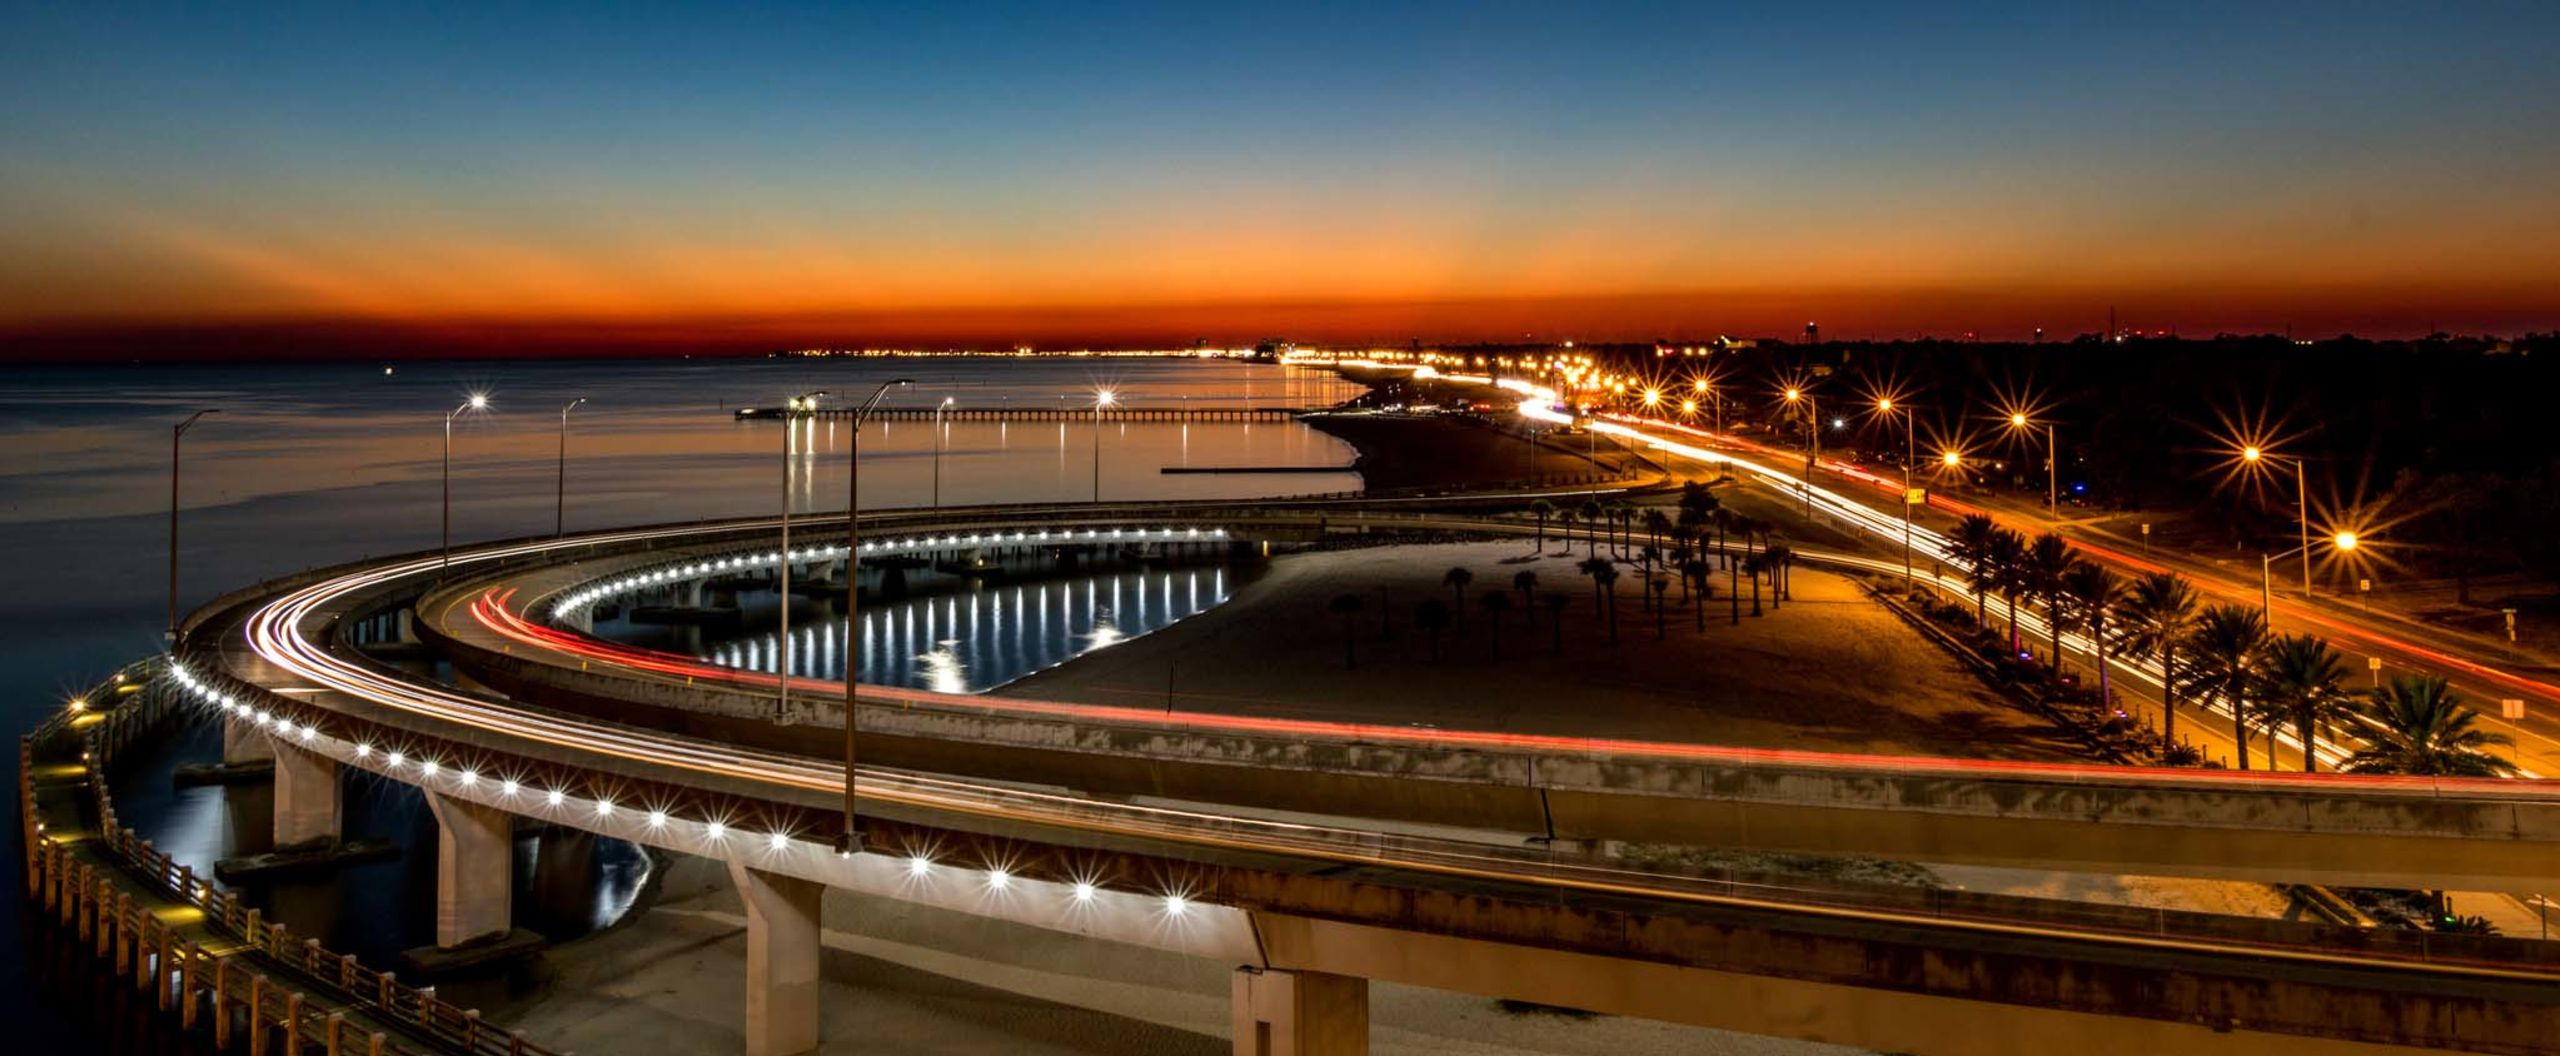 Biloxi I-110 Loop by JA Sawyer Imaging